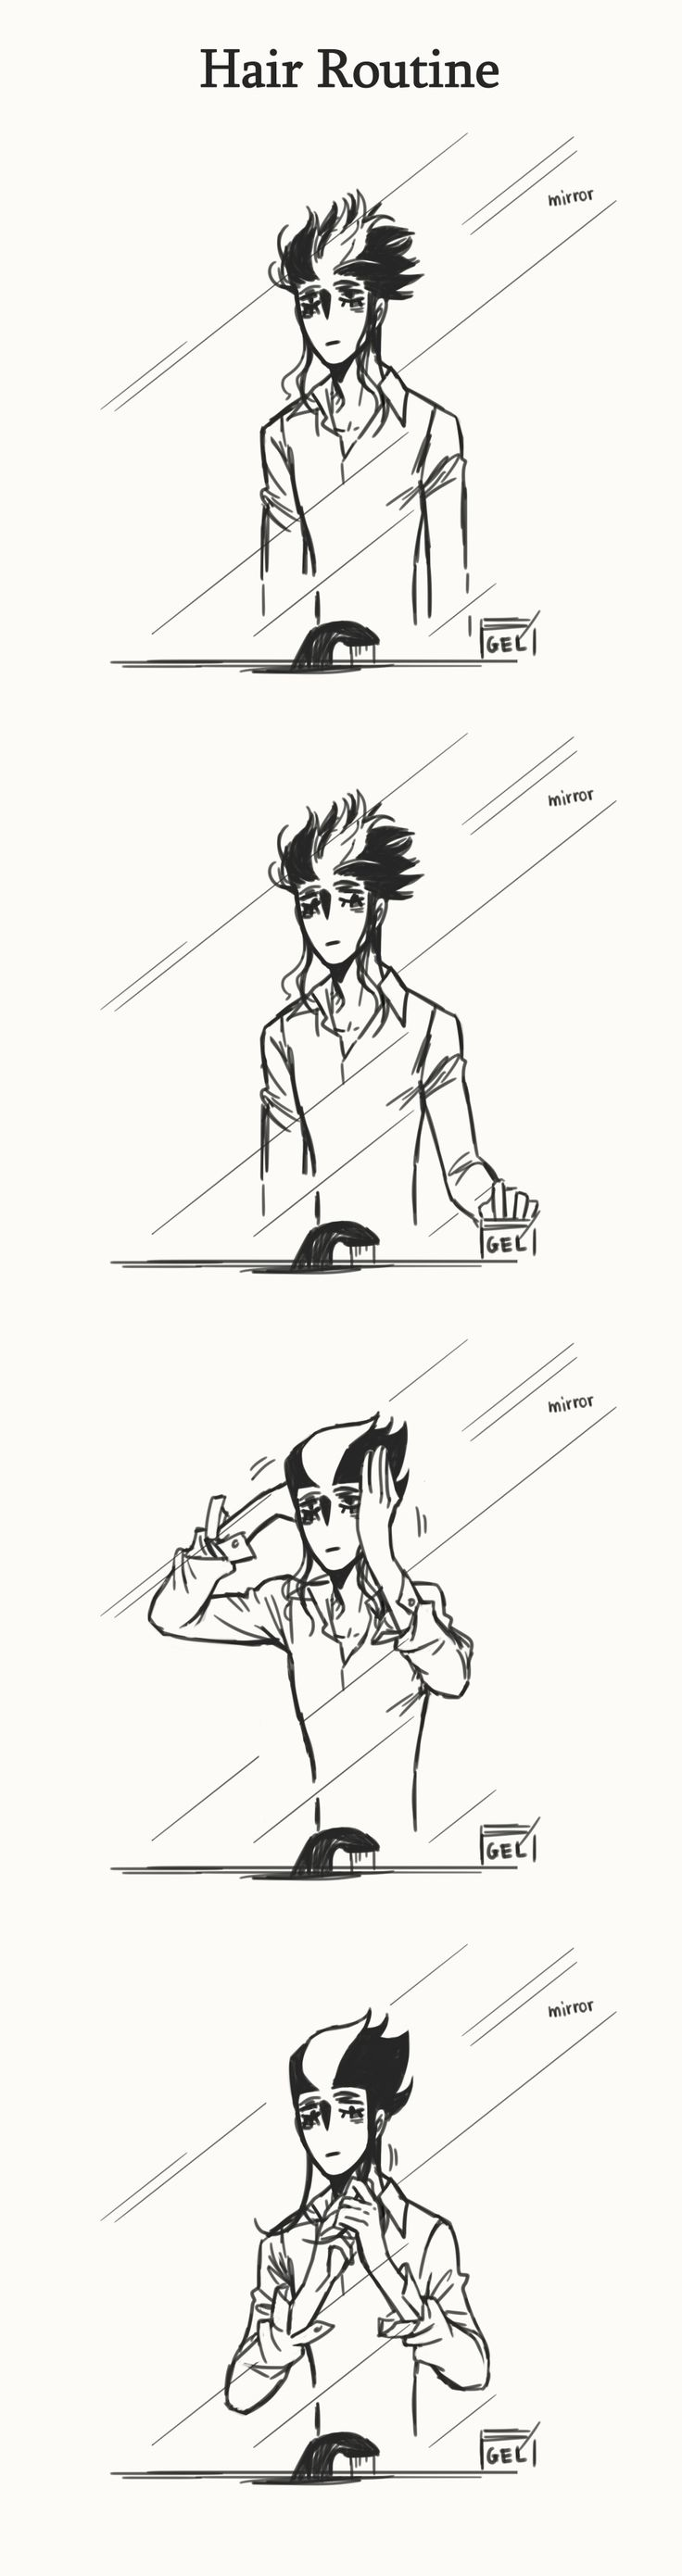 Random Stuff #4 - image a matter od life and death the snipster hair routine 1/2